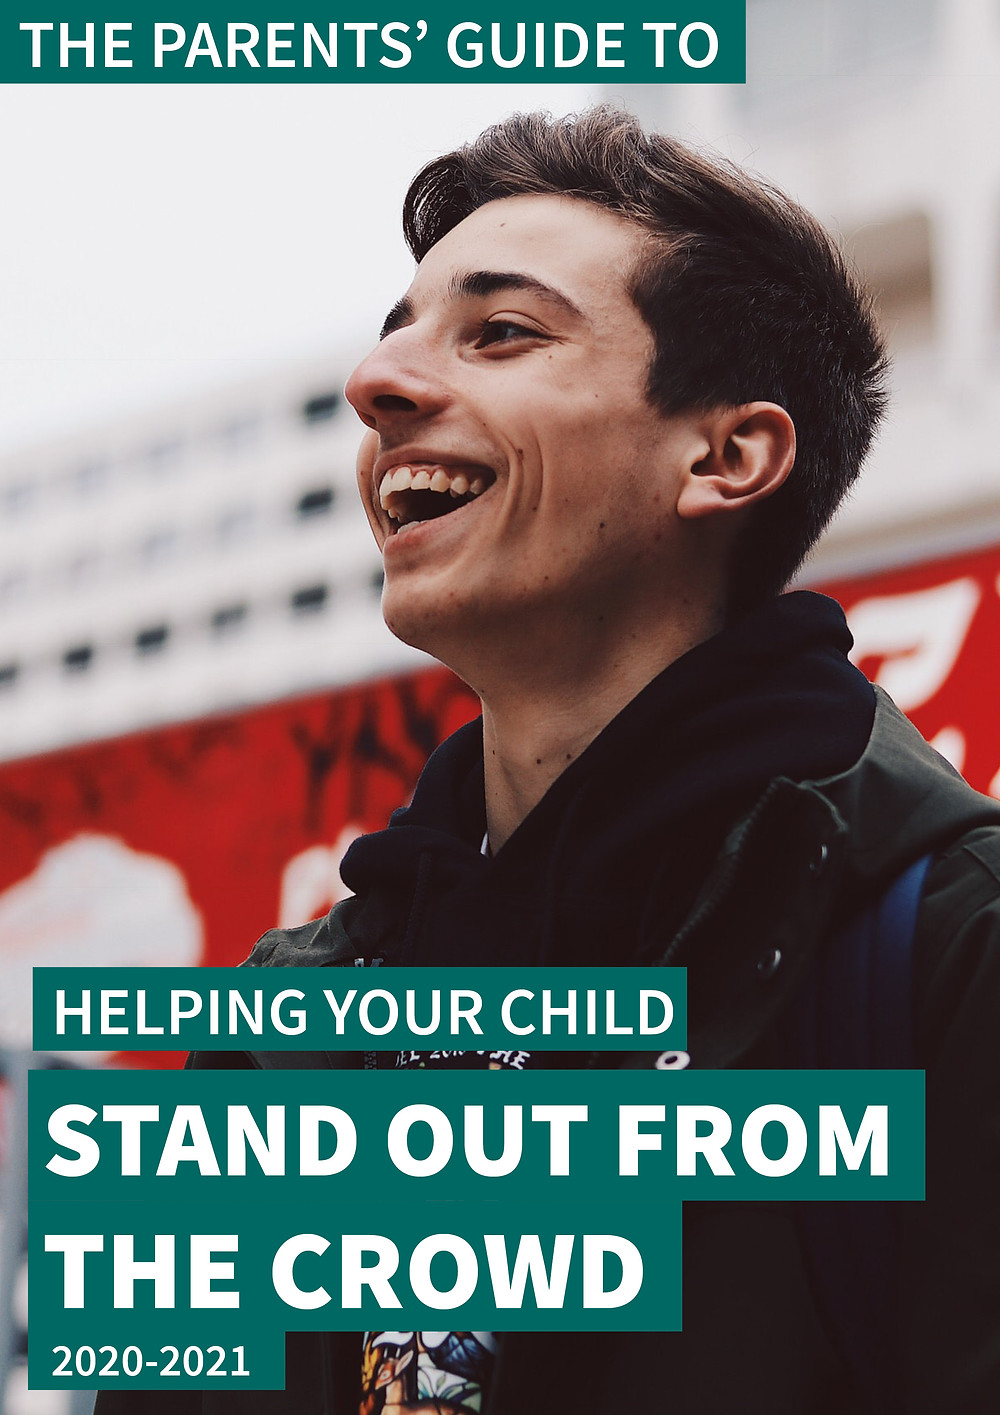 The Parents' Guide to helping your child stand out from the crowd front cover